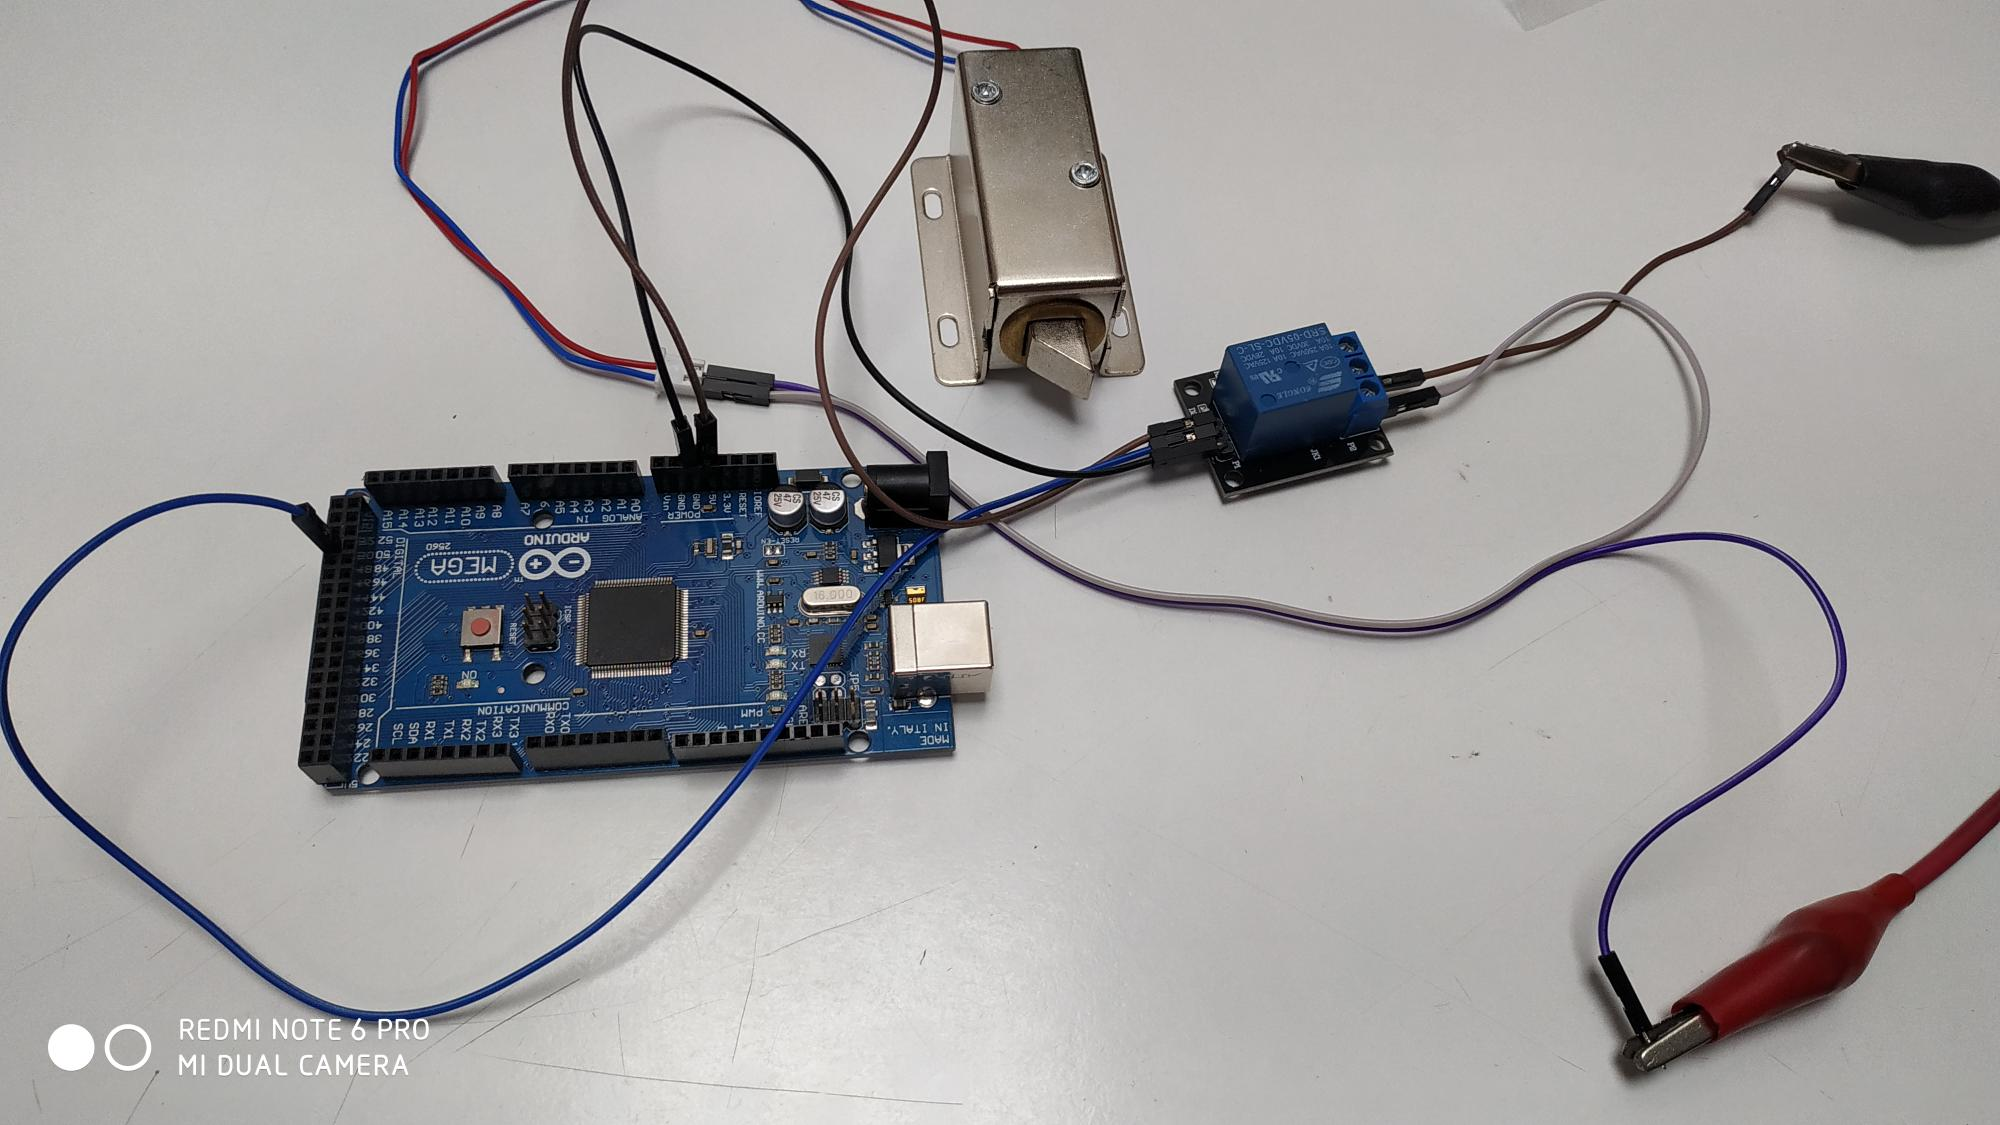 Connection of Relay and Door lock solenoid with arduino Mega